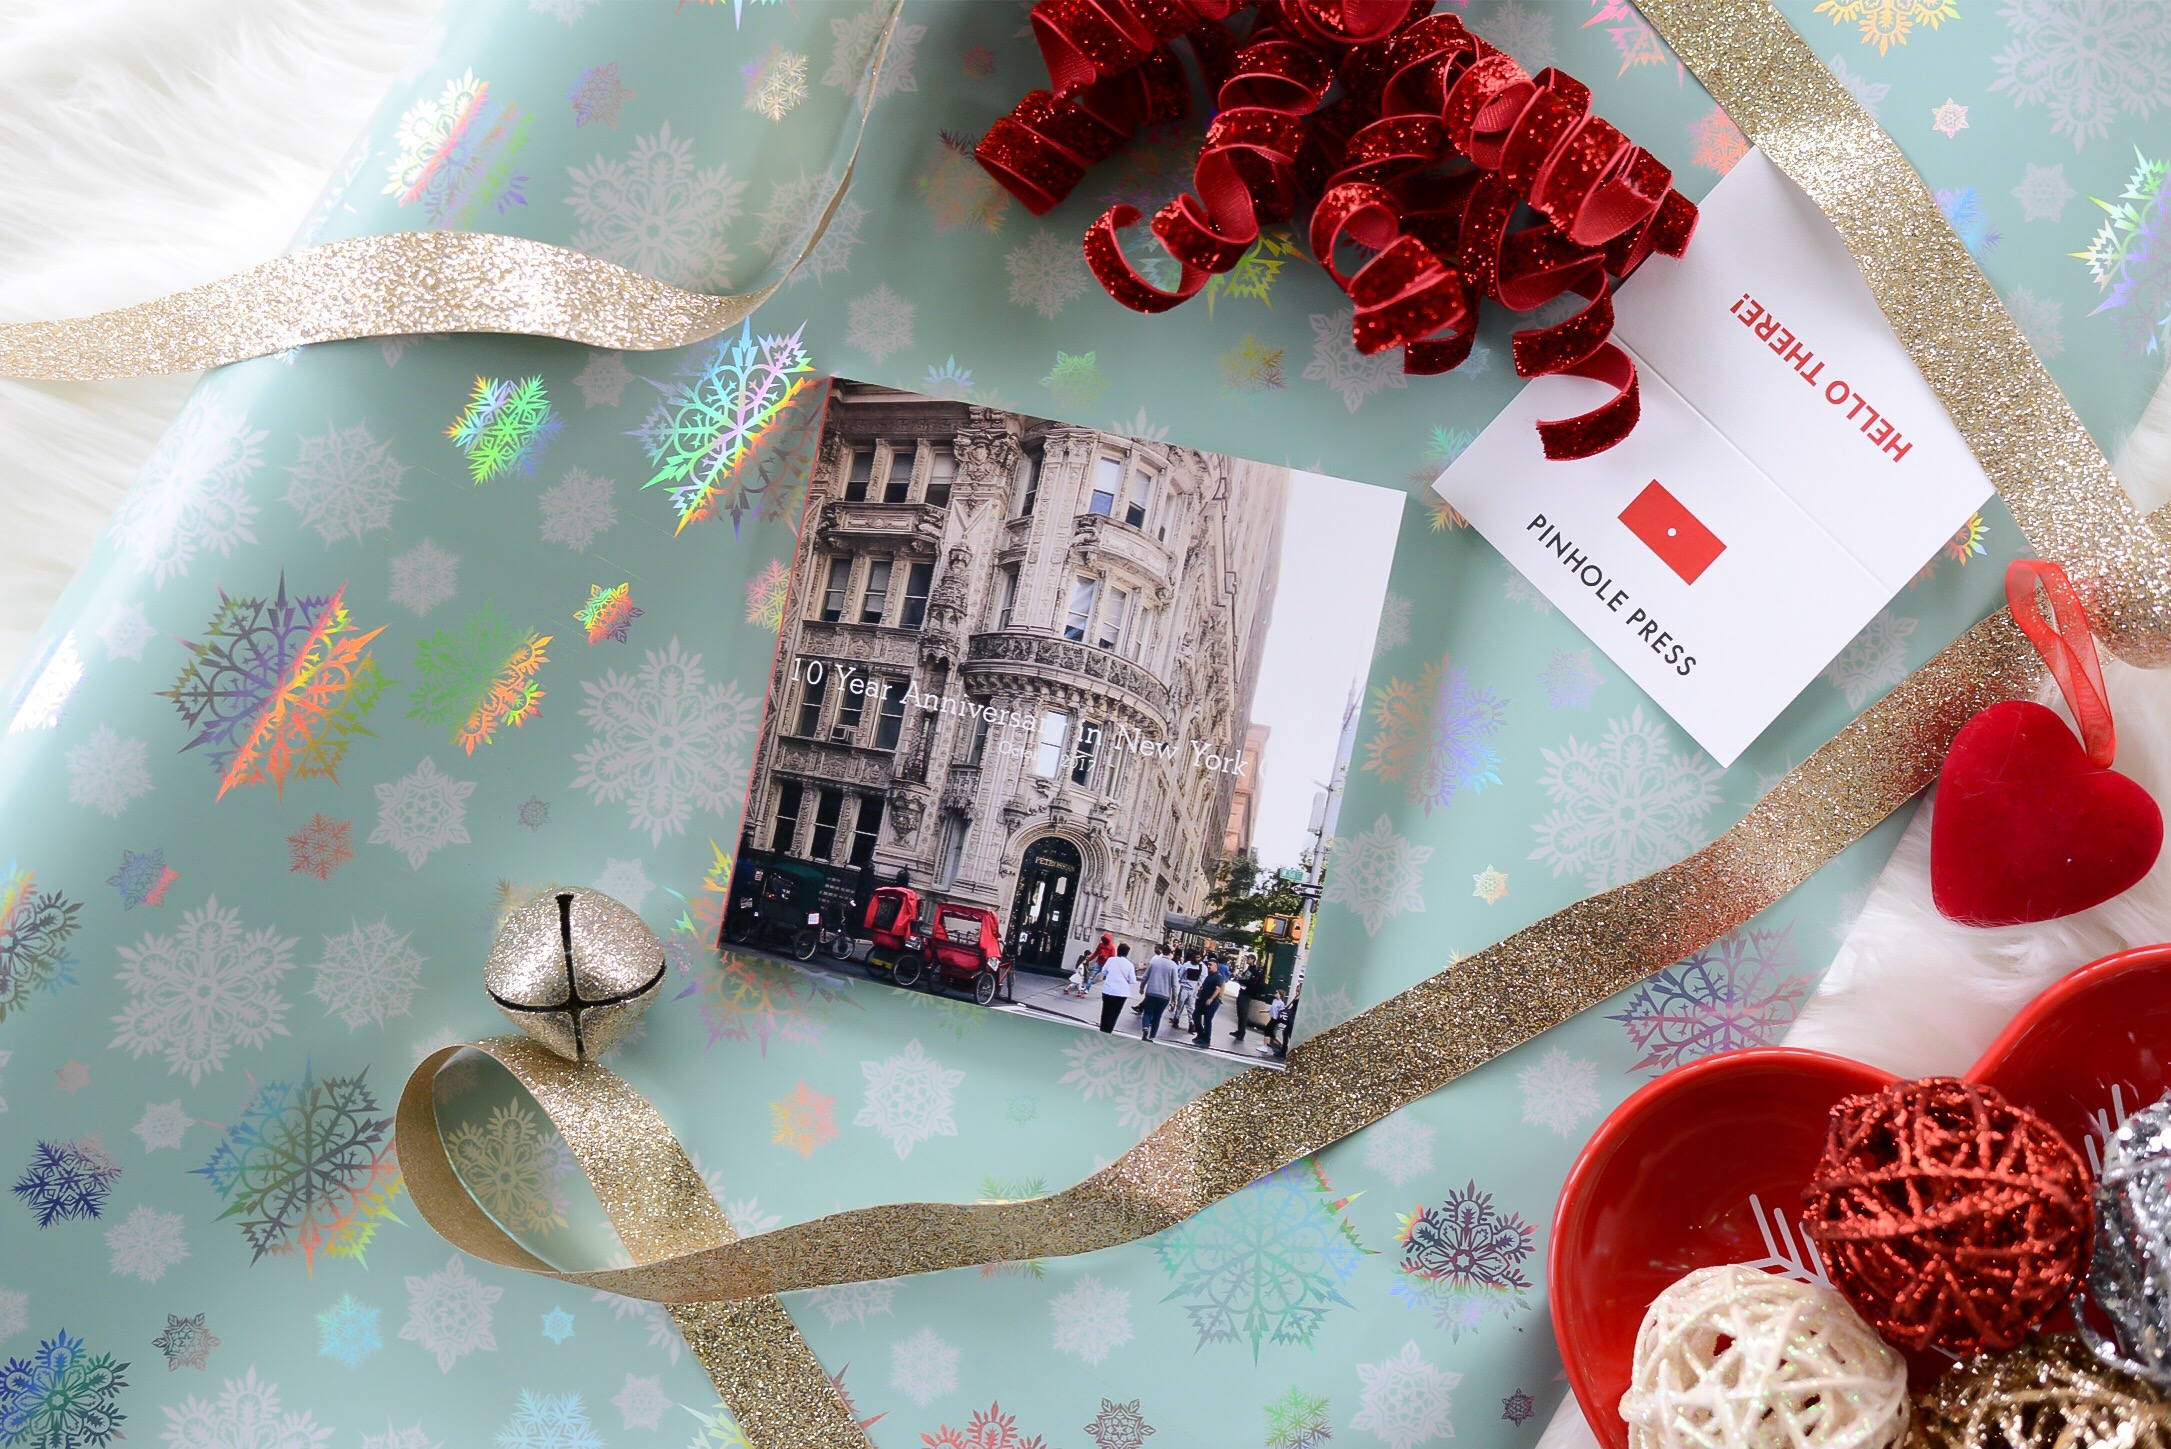 An Awesome Site for Creating Holiday Cards and Gifts- Pinhole Press